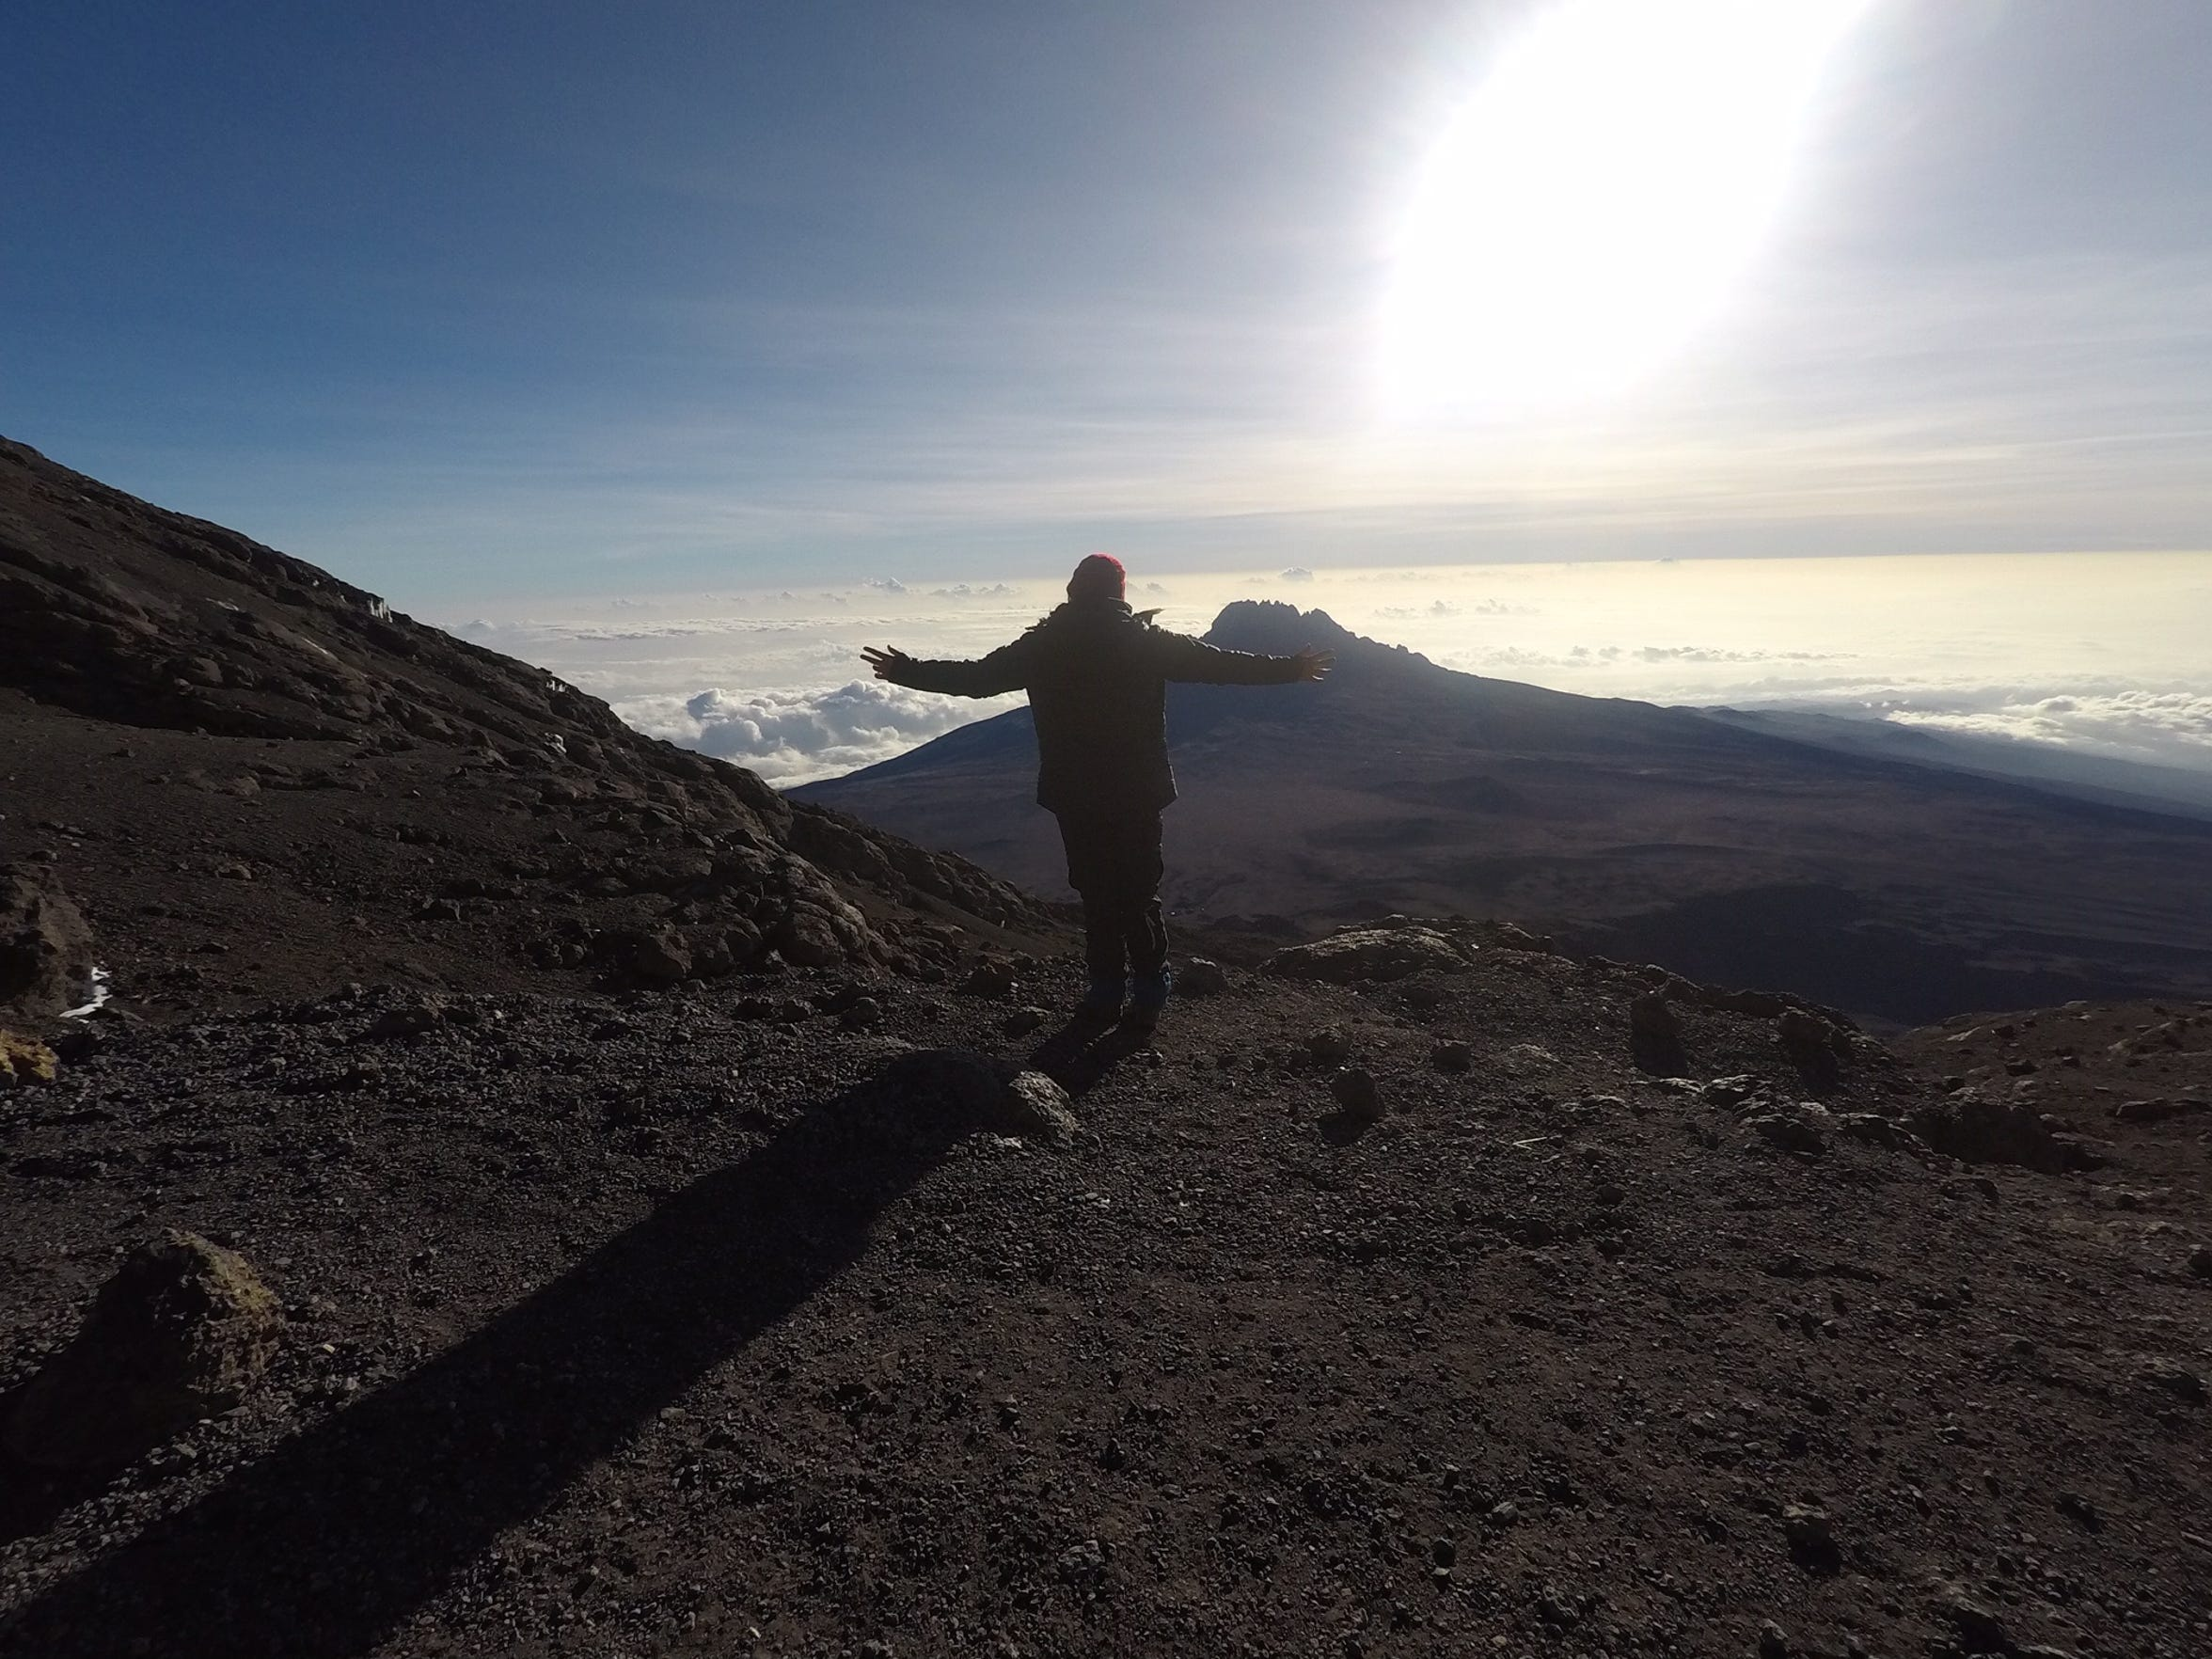 A moment of peace at the summit of Mount Kilimanjaro, Tanzania